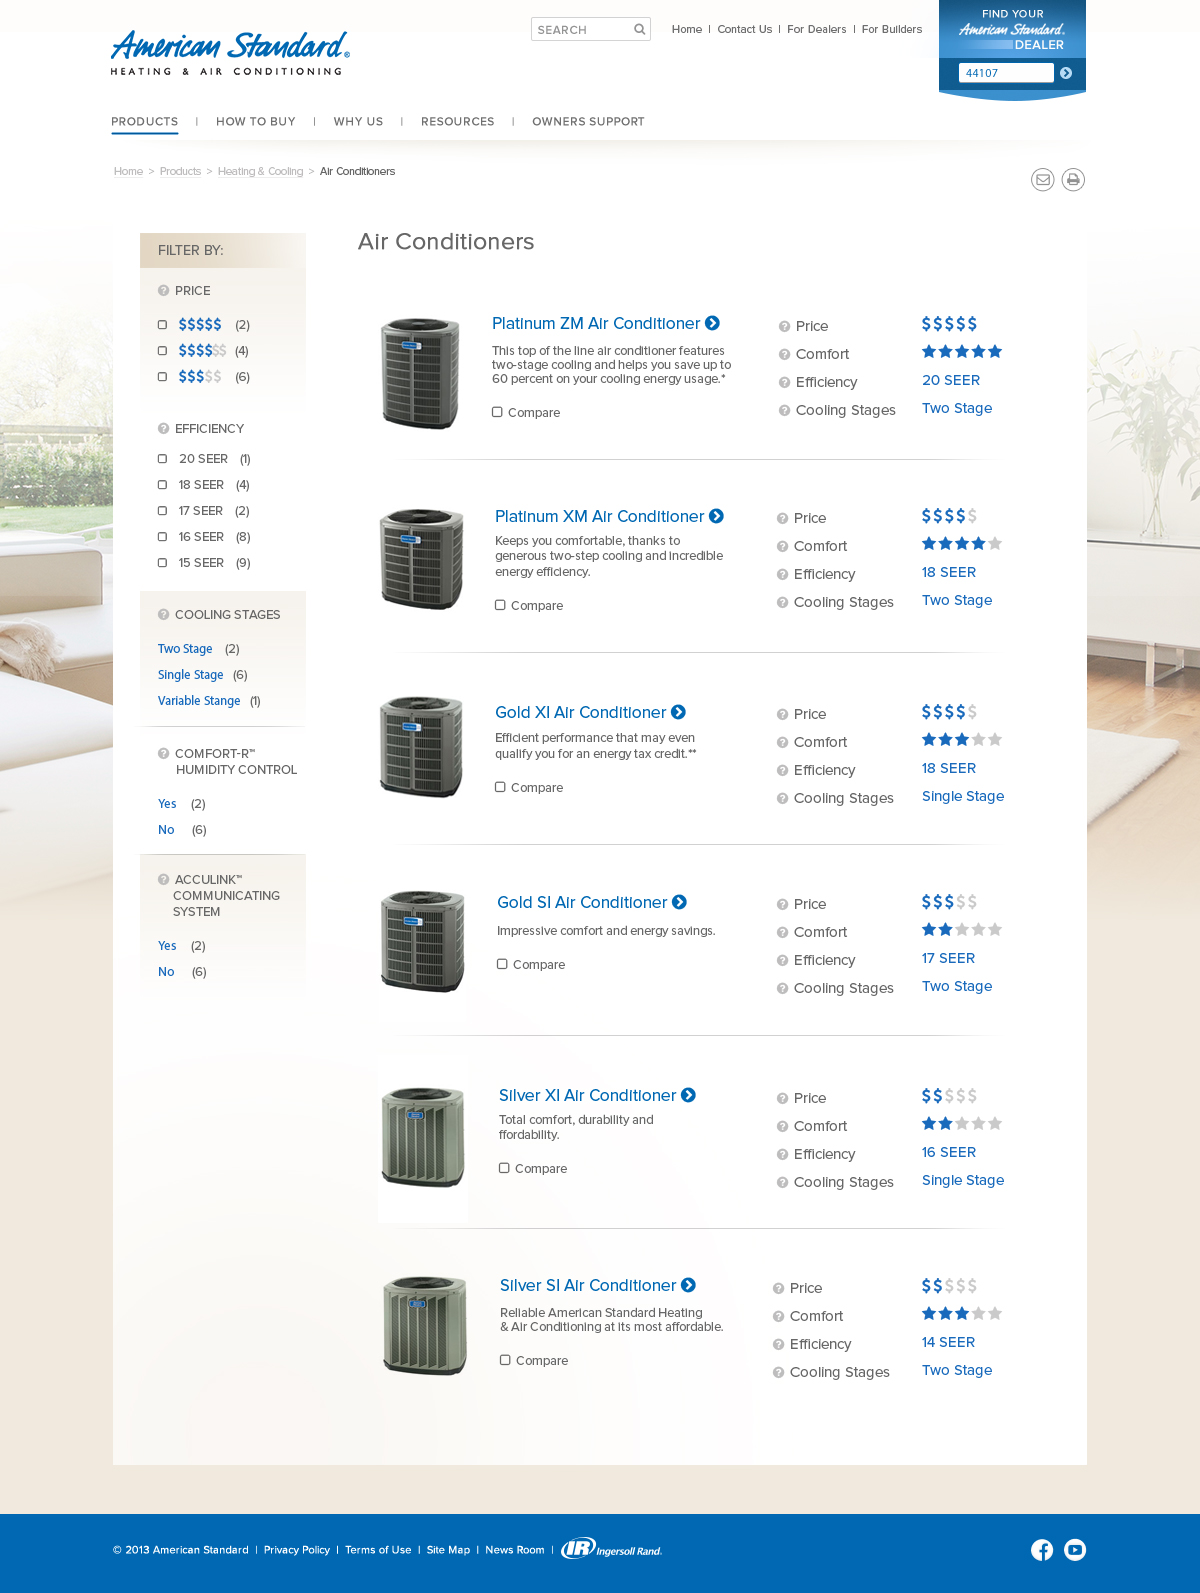 ING-AS_Products_List_Page_1.jpg